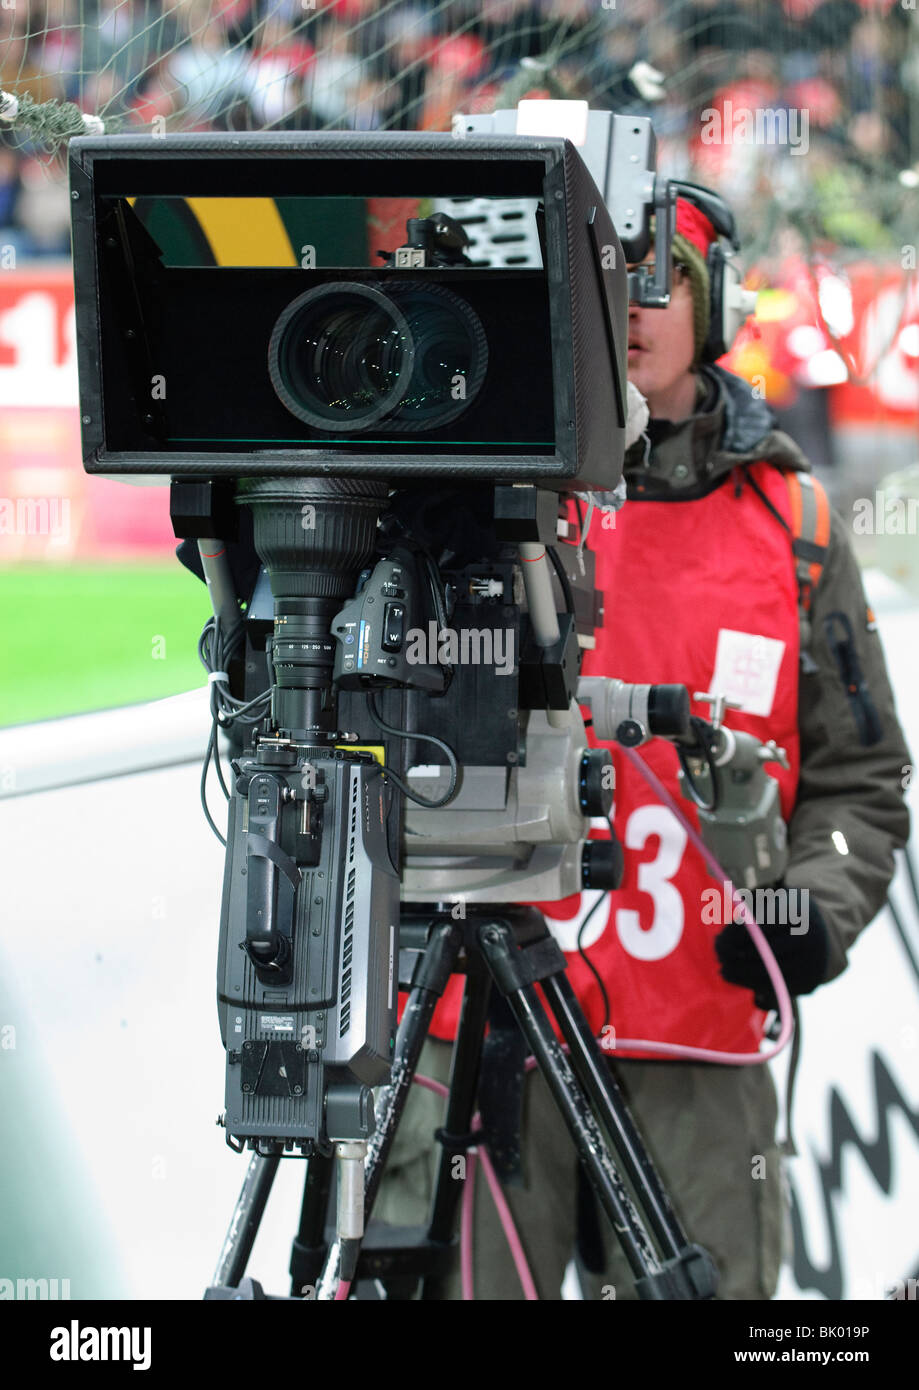 Television camera capable of recording 3-Dimensional images in football stadium of Leverkusen, Germany - Stock Image